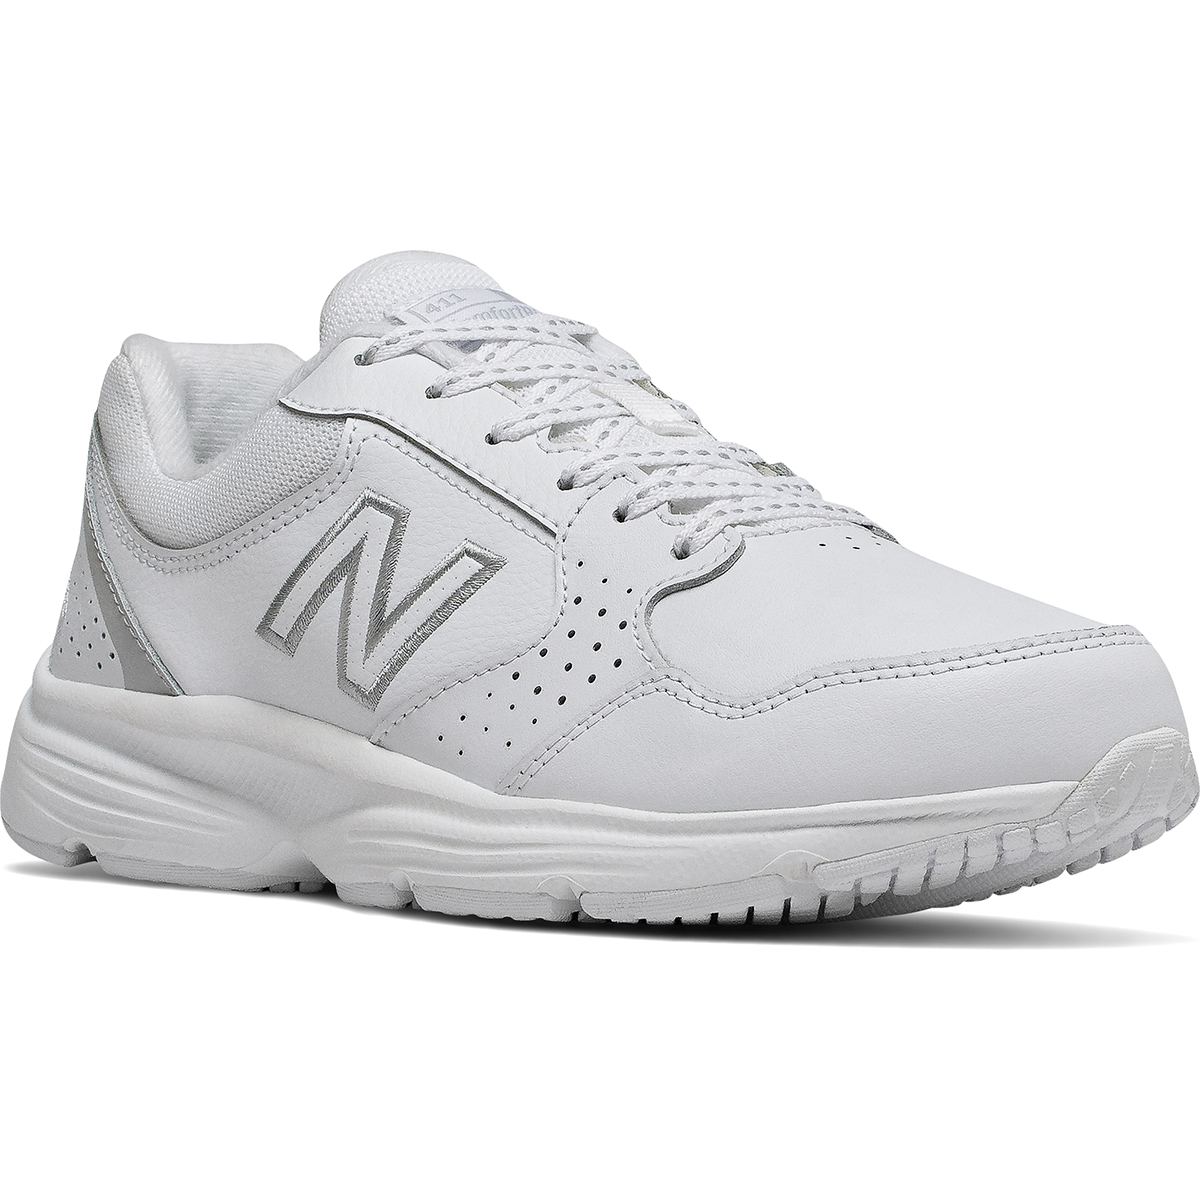 New Balance Women's 411 Walking Shoes, Wide - White, 11